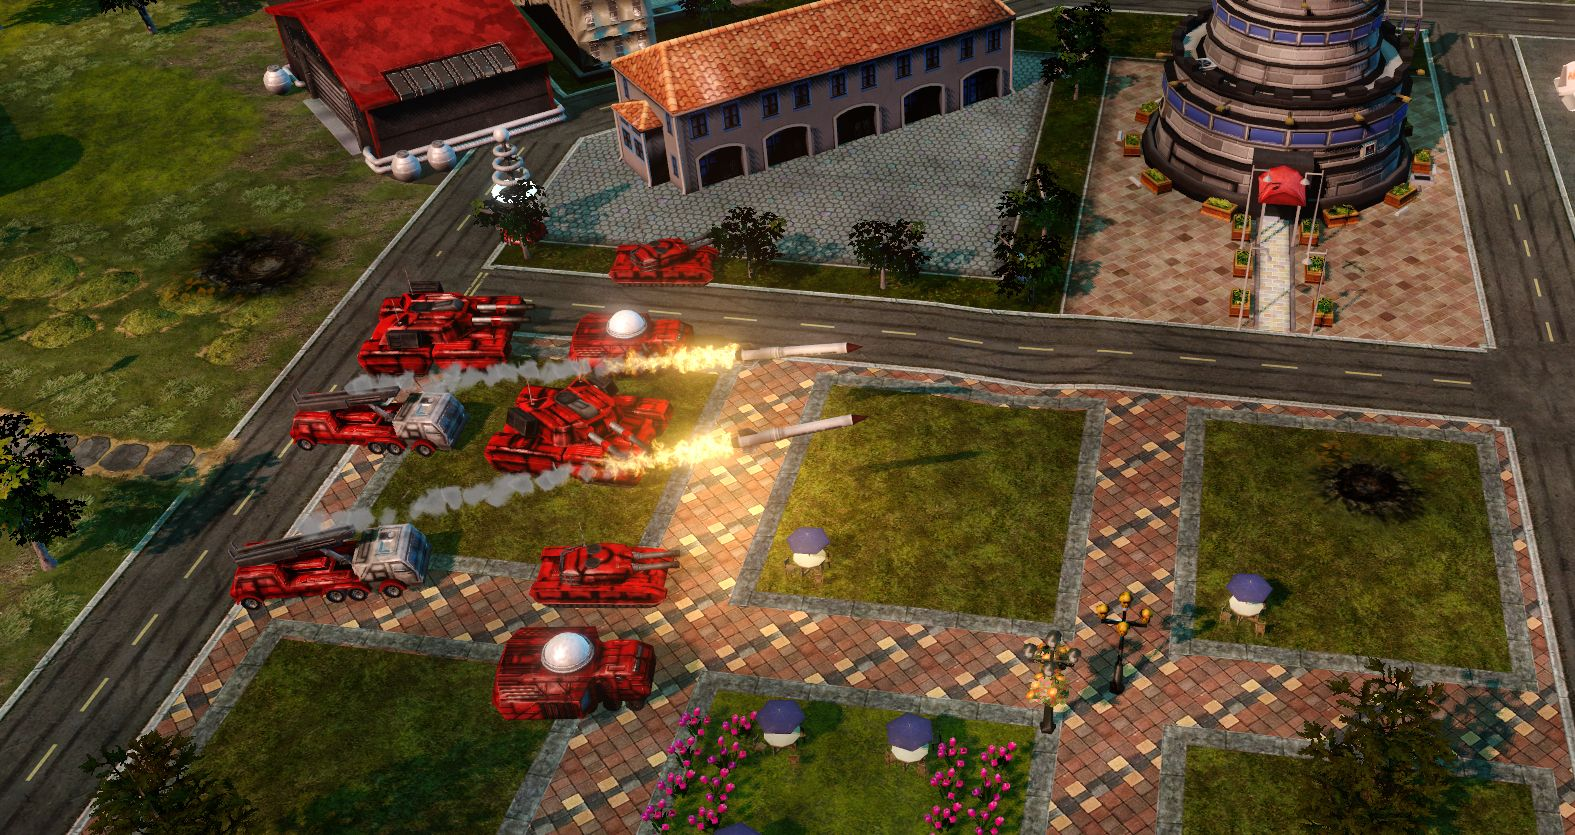 Command & Conquer - Alarmstufe Rot (PC) Auch bekannt als: Command & Conquer - Red Alert Andere Systeme: [PlayStation] Genre: Strategie Erschienen: Mai 1996